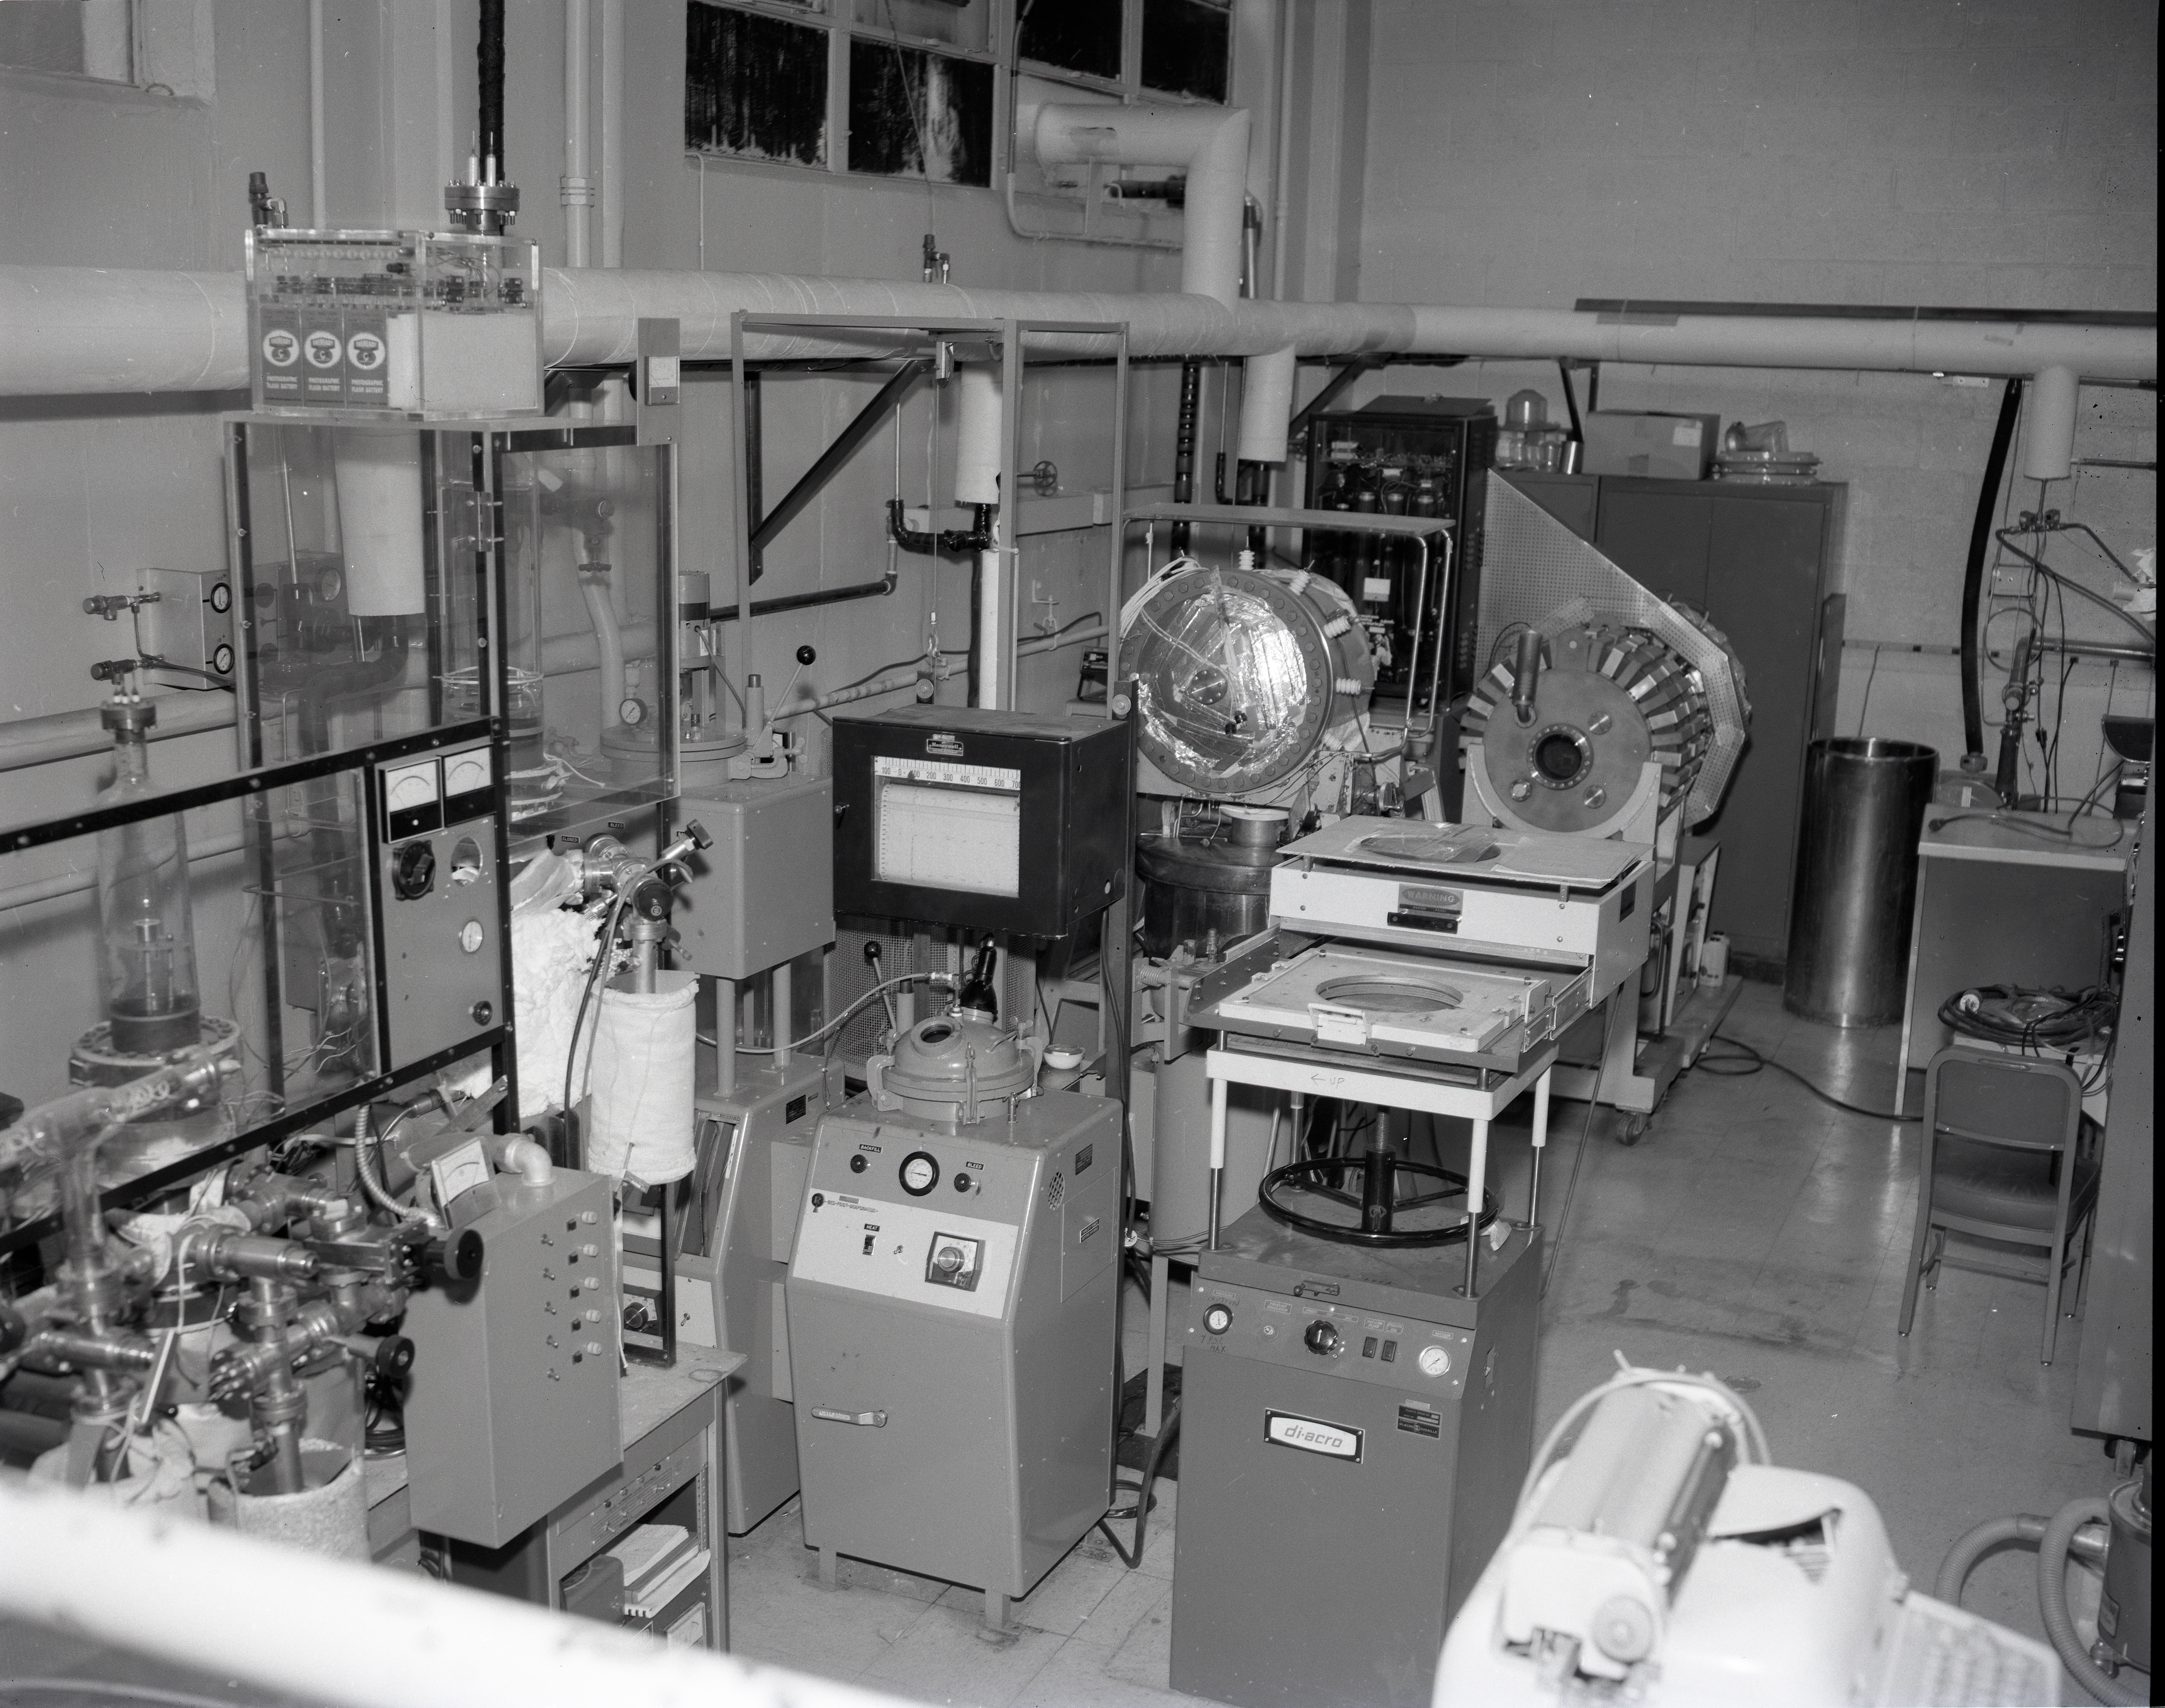 TEST RIGS - PARYLENE RIG - X FORMER LIFE TEST - LAMINATE LIFE TEST - PRESSURE POTS - TALL BELL JAR AND LOW - COMMUNICATION TECHNOLOGY SATELLITE CTS OUT GASSING